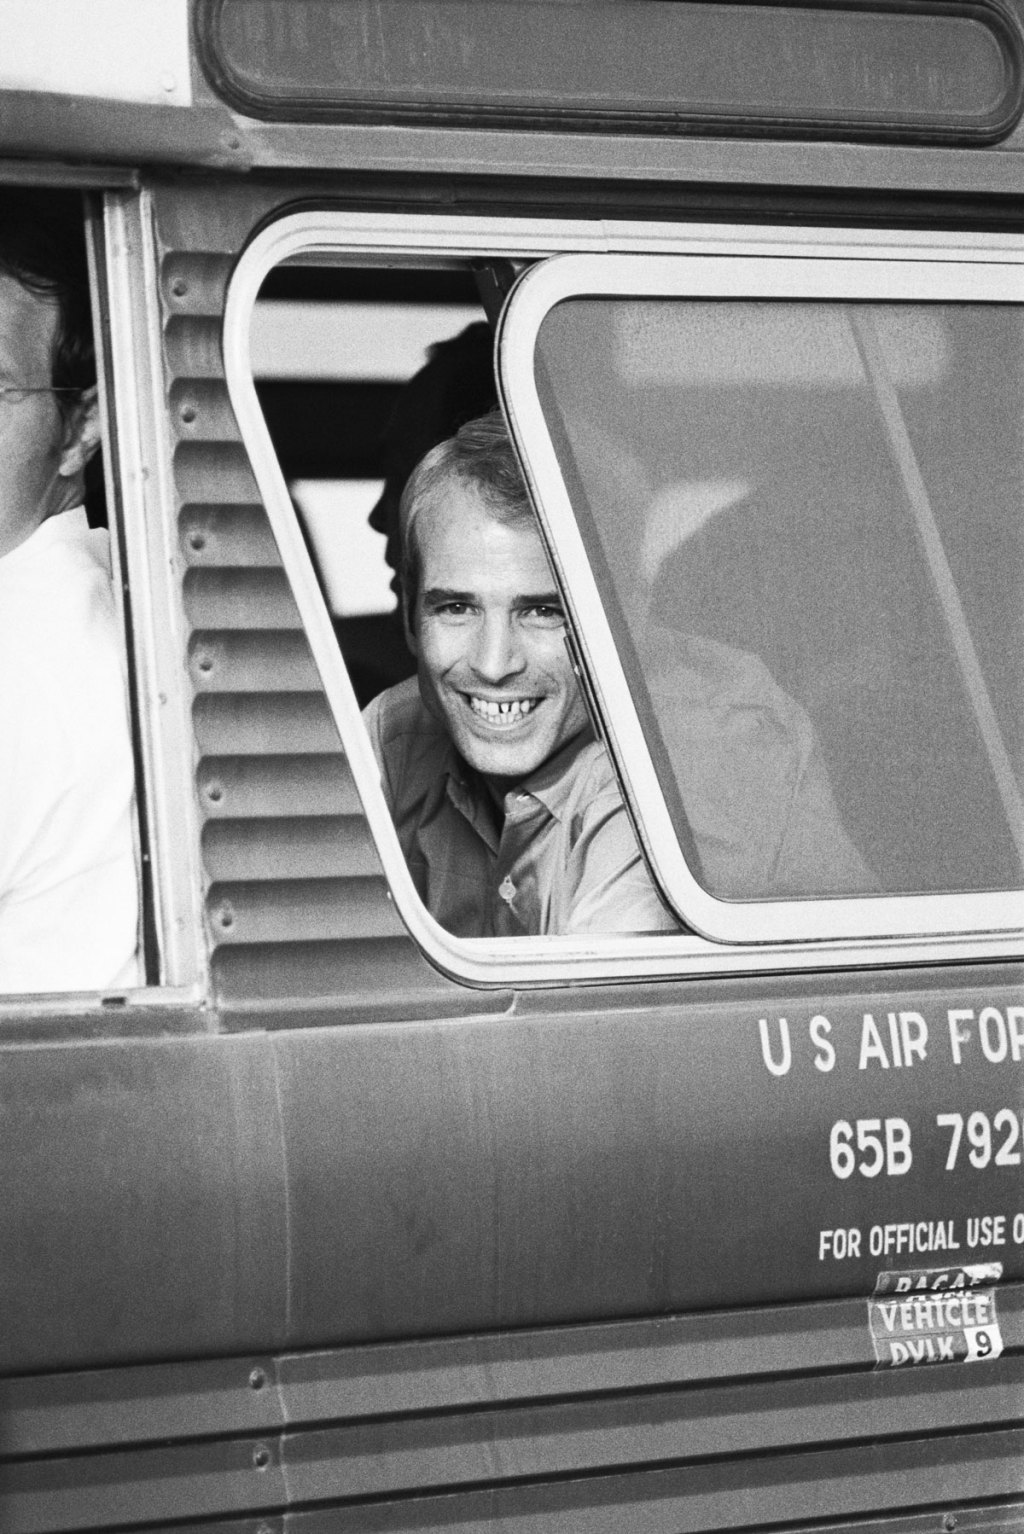 American prisoner of war, Navy Lt. Commander John McCain III, smiles from a bus window on arrival at Clark Air Base in the Philippines, after his release from Hanoi during the Vietnam War on March 14th, 1973. McCain was taken prisoner on 26th October 1967. He is the son of retired Admiral John S. McCain Jr., whose last post was Commander-in-Chief of the Pacific Forces.